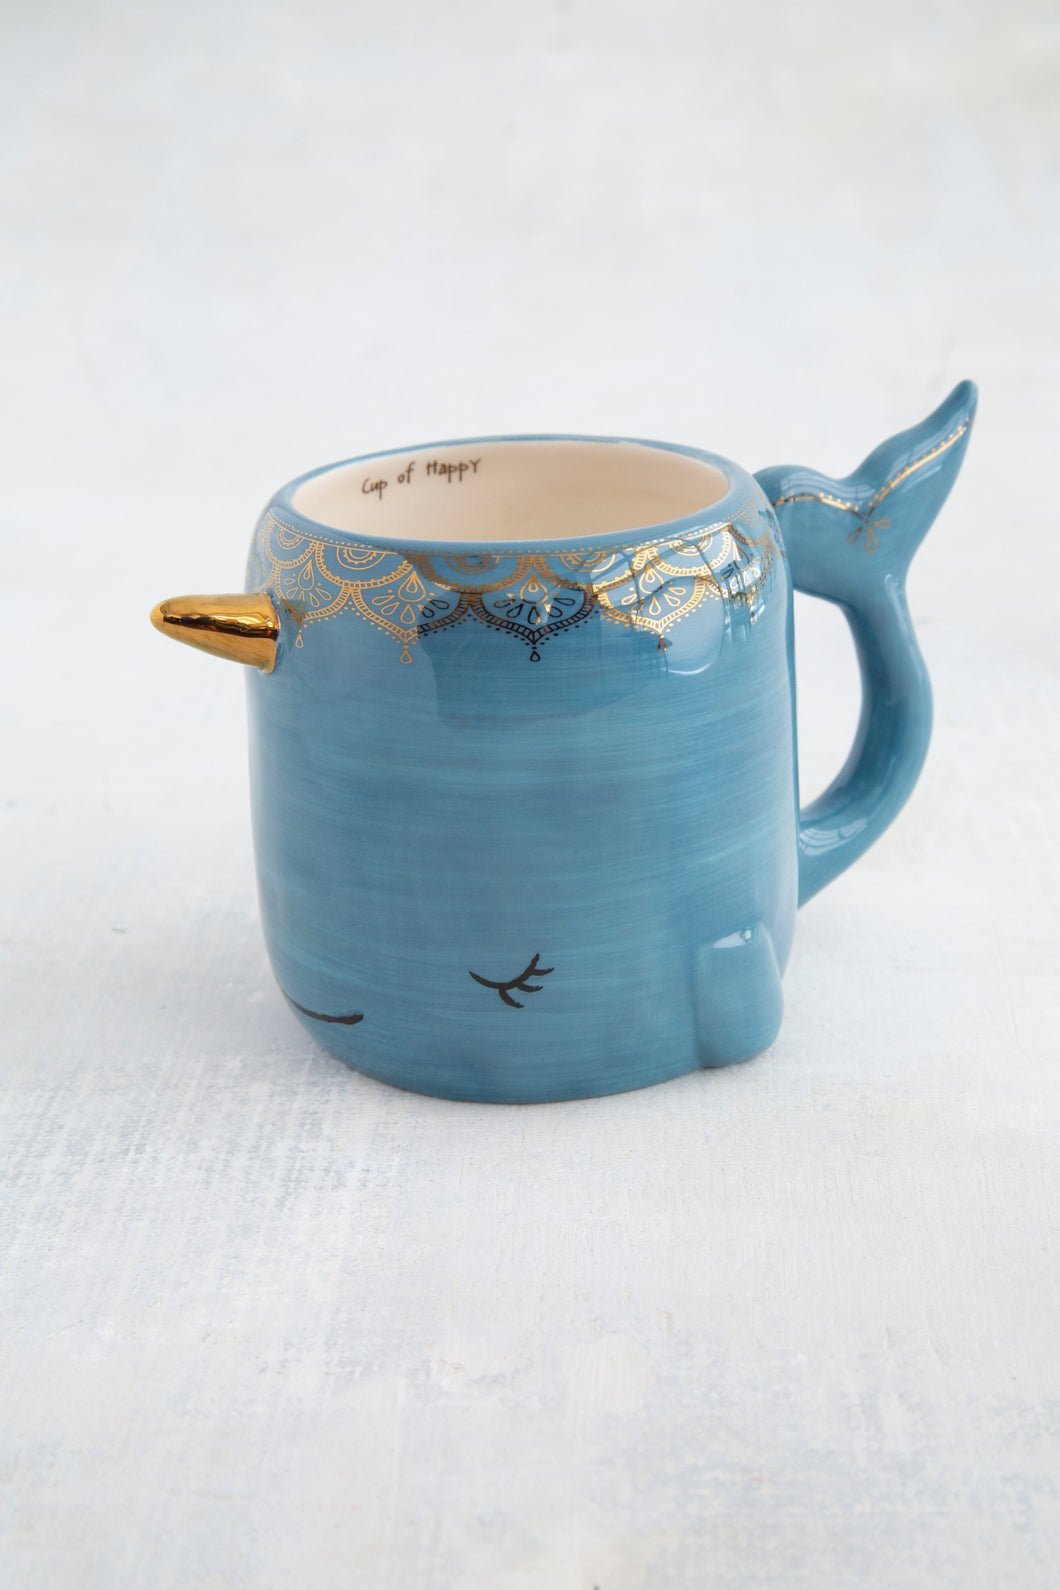 Folk mug narwhal blue painted ceramic